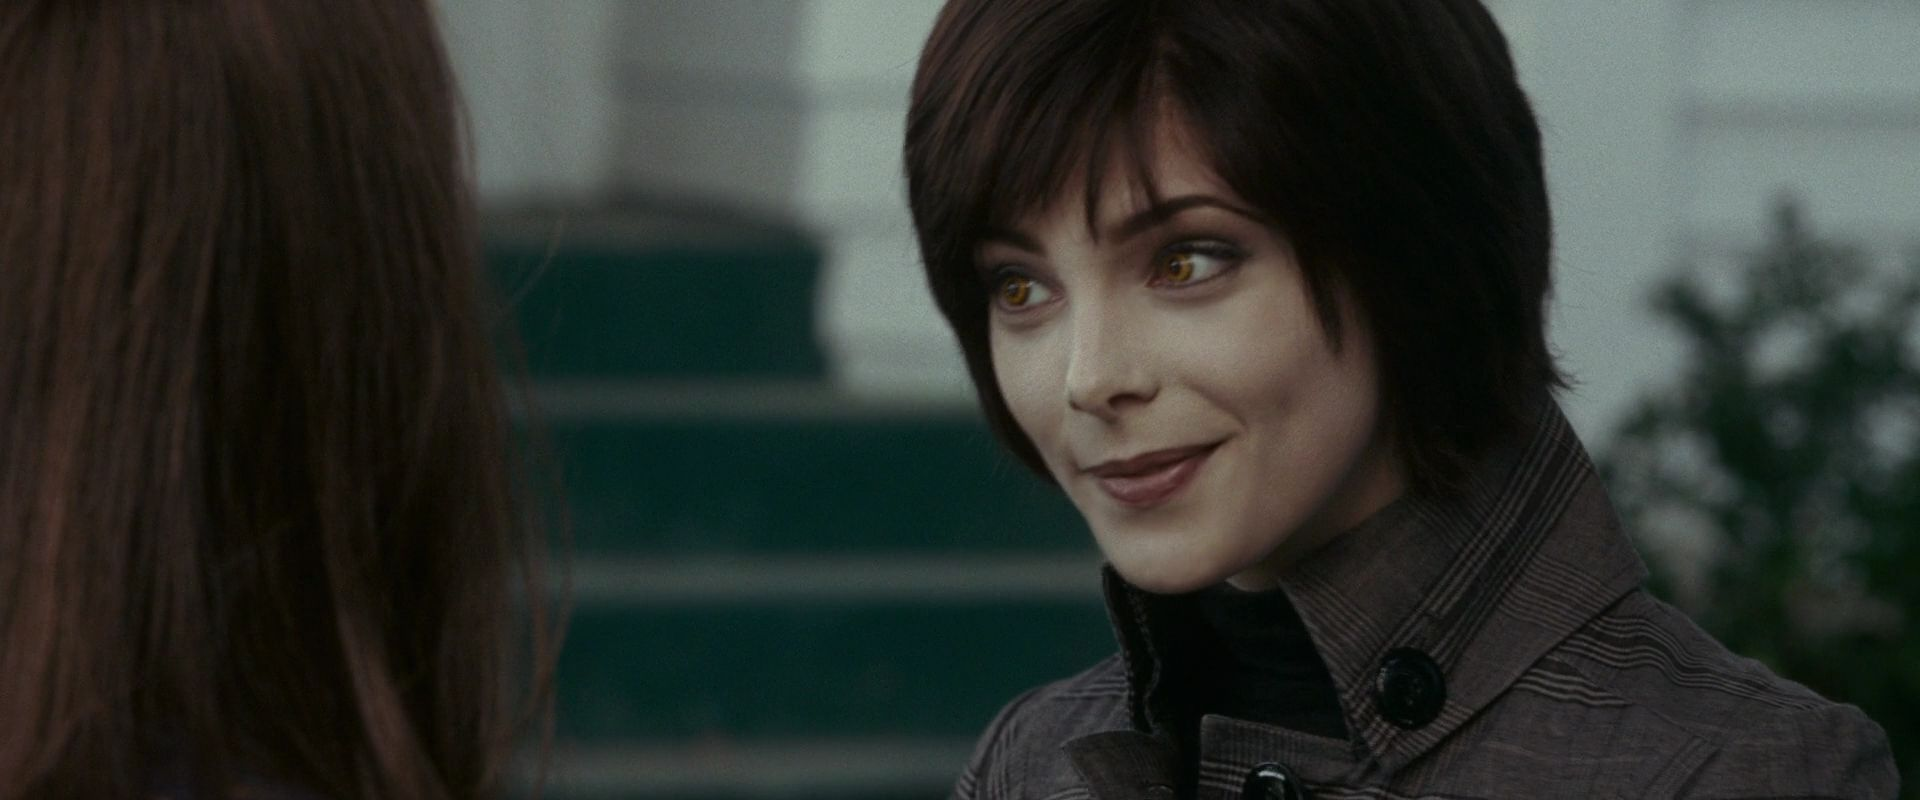 Alice Cullen Hair in Eclipse http://www.fanpop.com/clubs/alice-cullen/images/17329901/title/eclipse-bluray-screencap